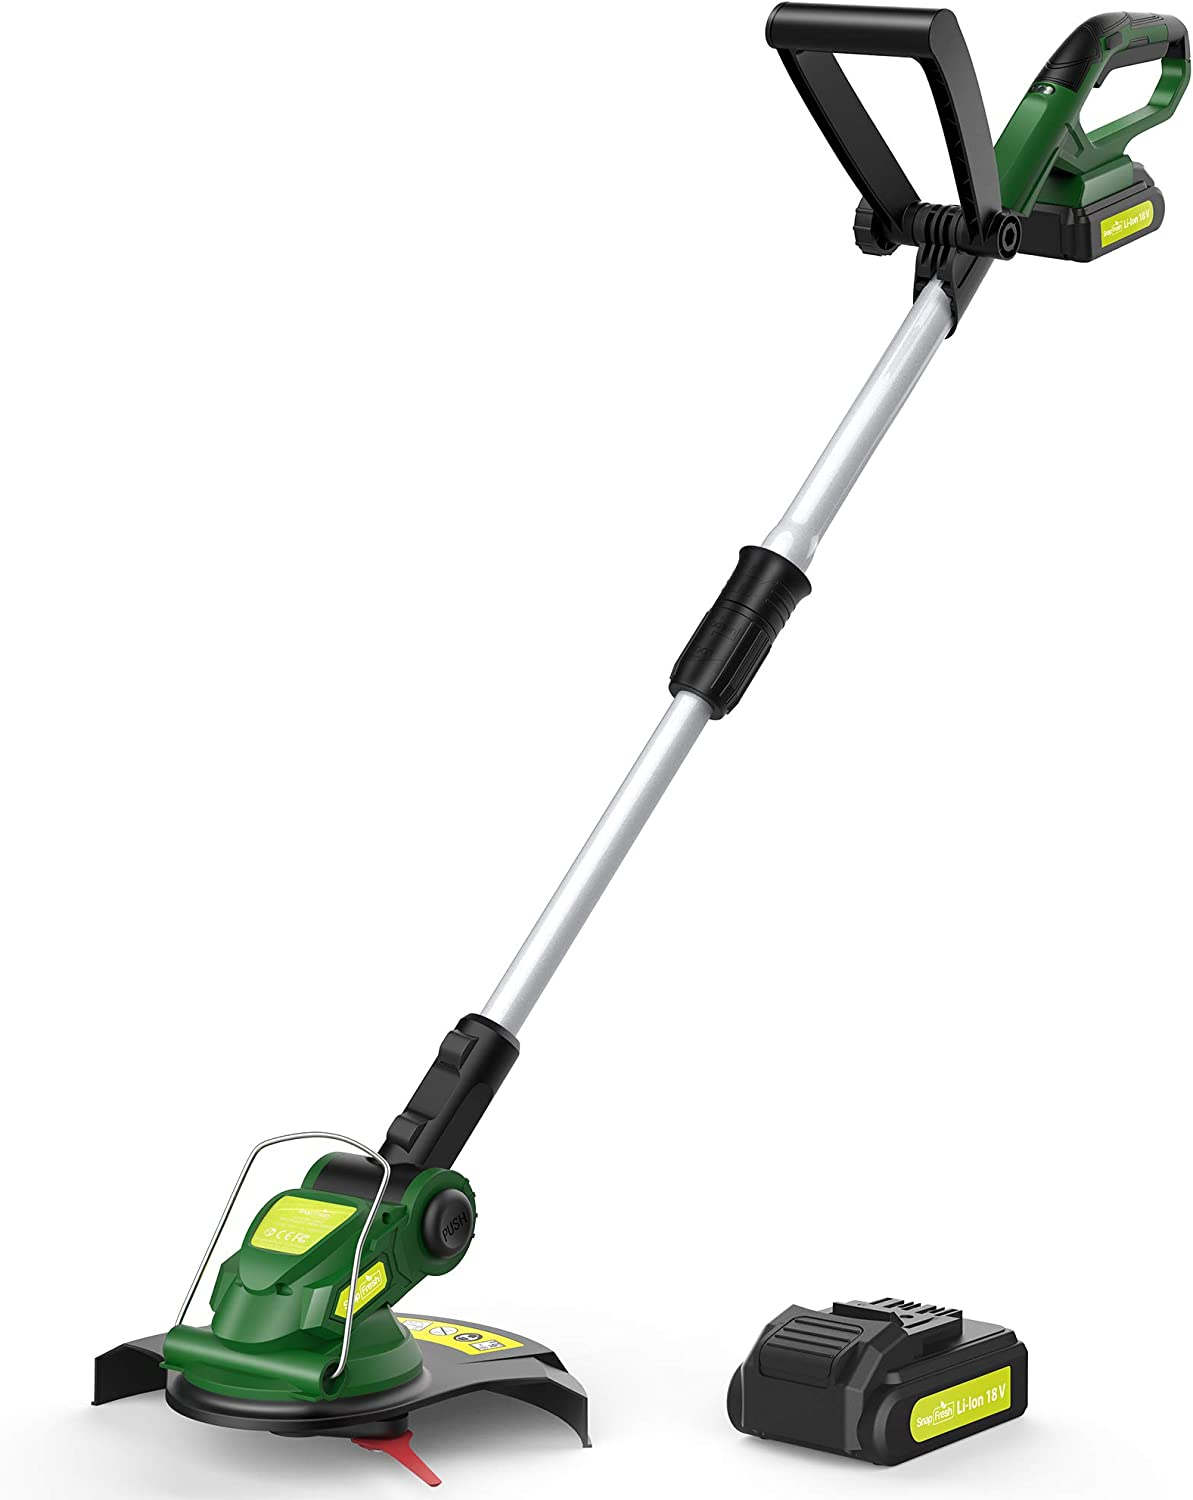 Cordless String Trimmer - Weed Trimmer/Eater Battery Powered, 18V Grass Trimmer with Battery & Charger, Electric Lawn Trimmer for Weed-Wacking, Ideal for Weed-Eating (3.0Ah Battery&Charger Included)